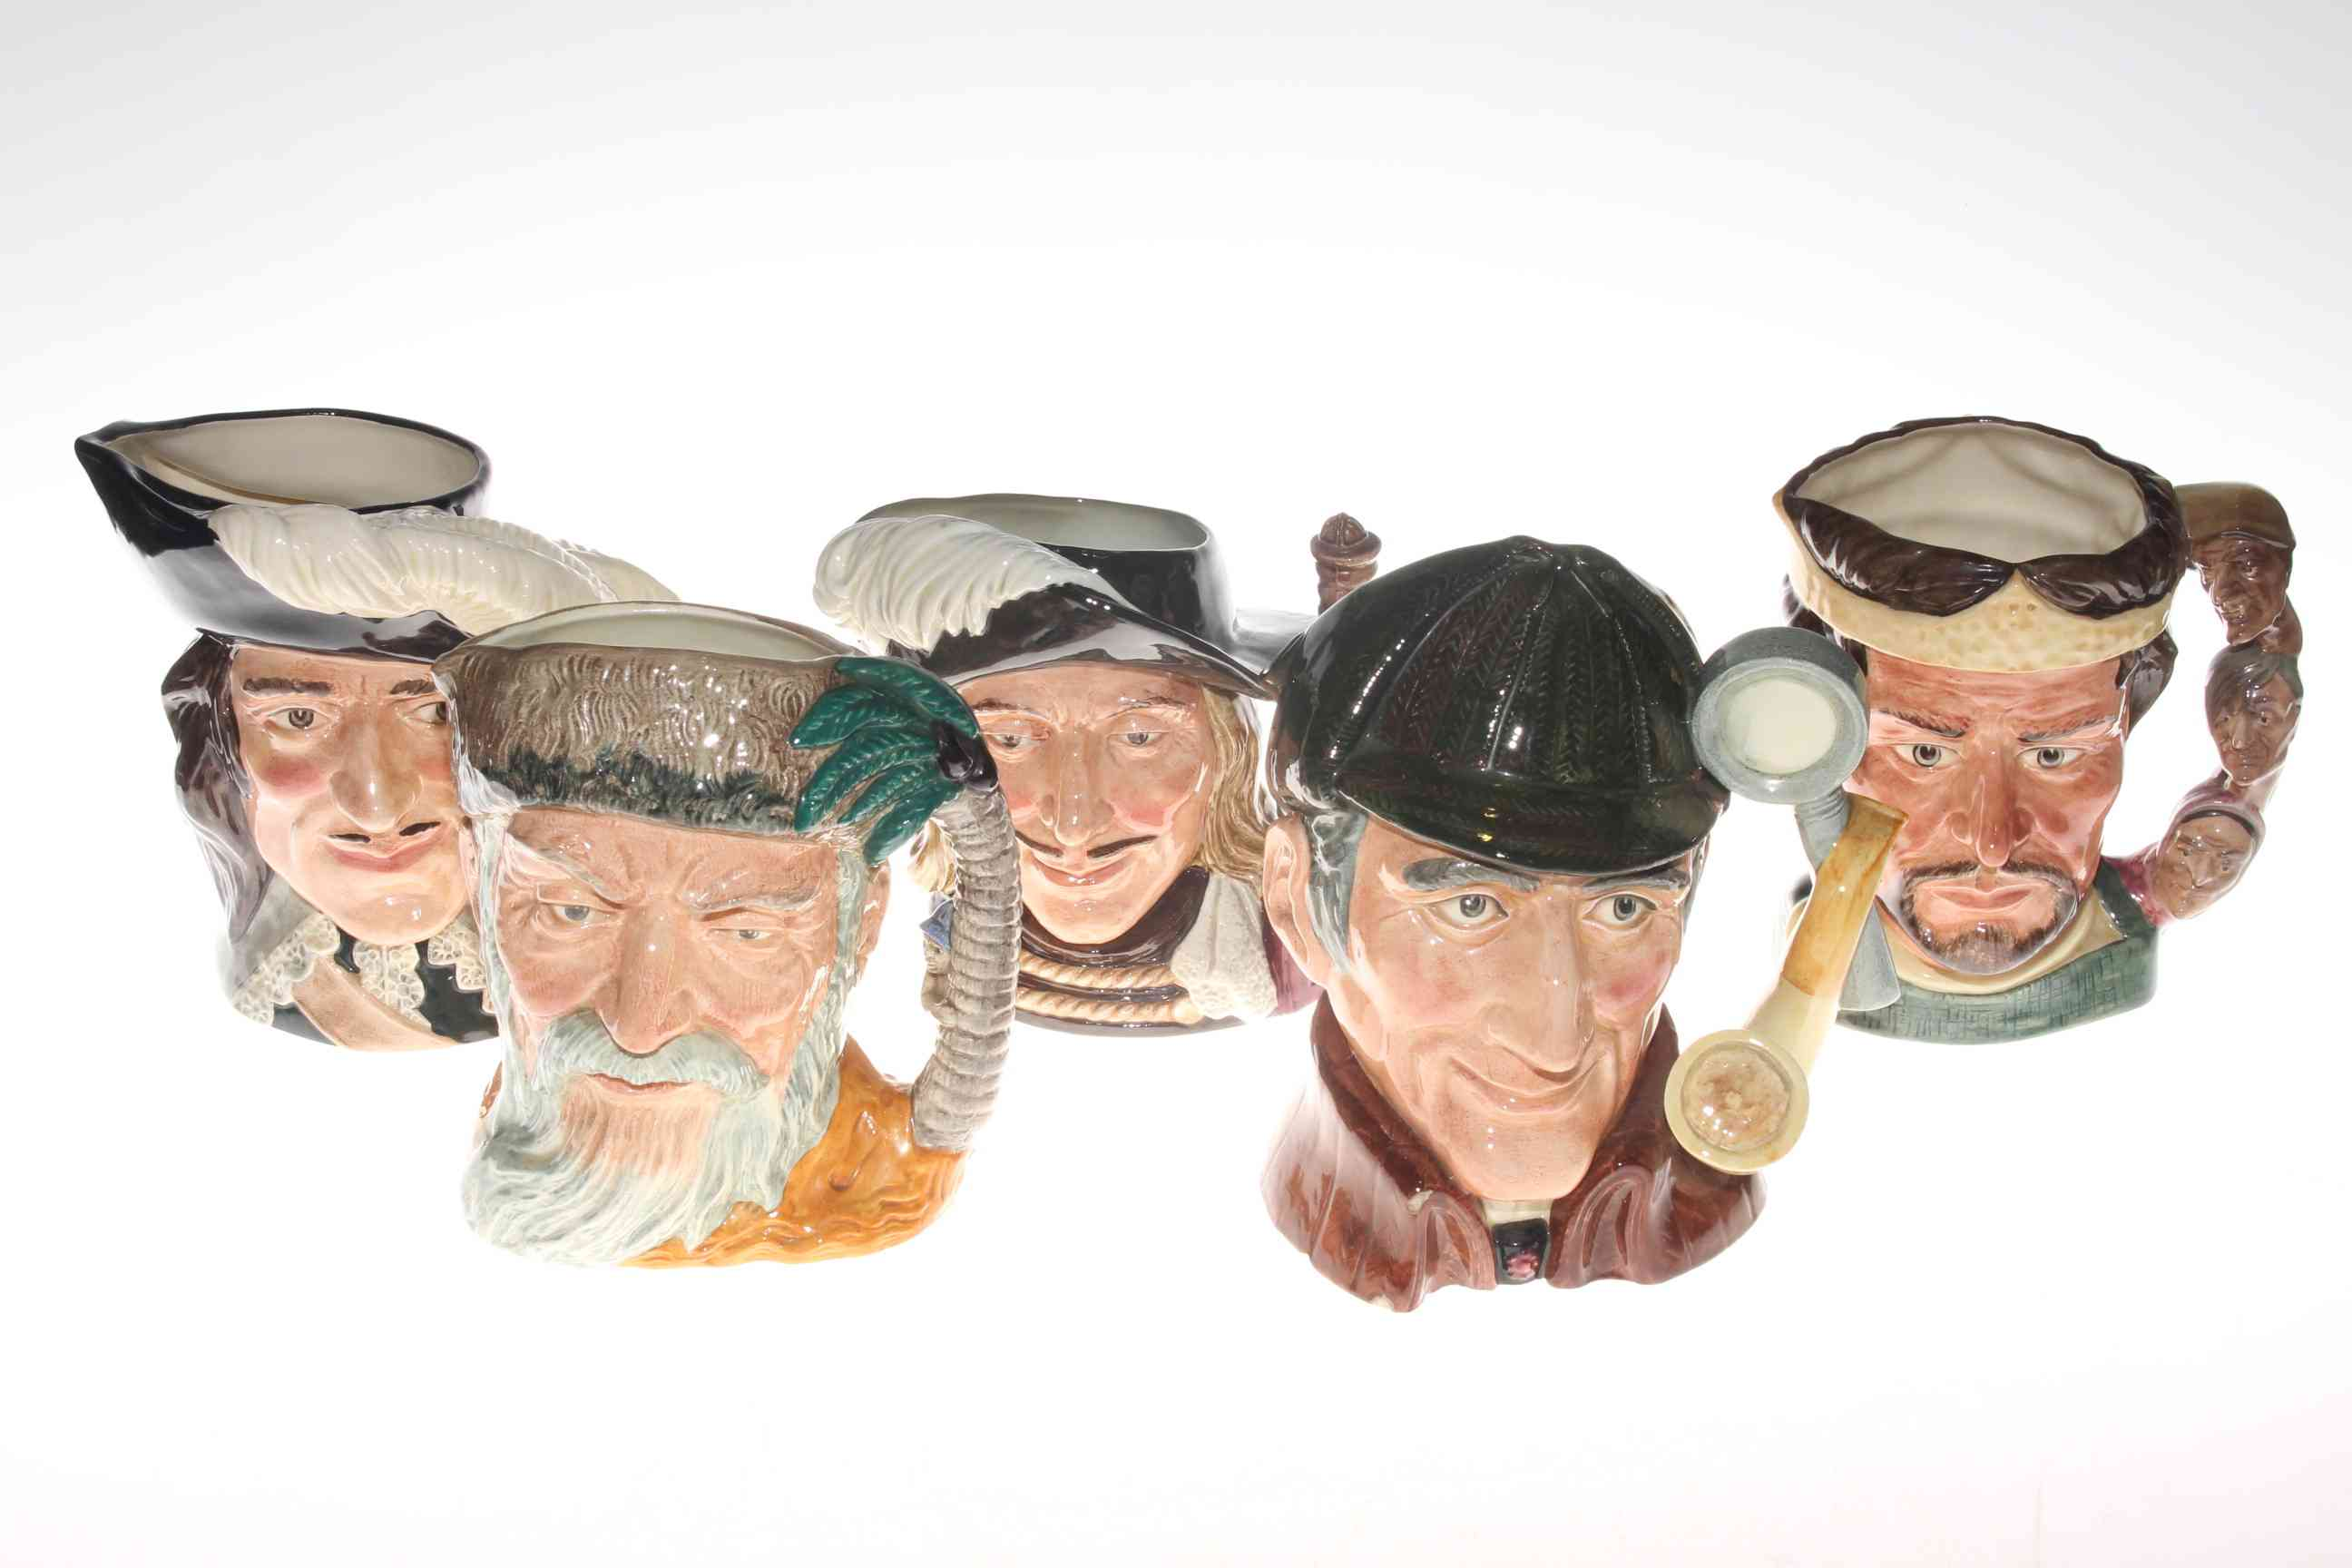 Lot 16 - Five large Royal Doulton character jugs including Robinson Crusoe and The Sleuth